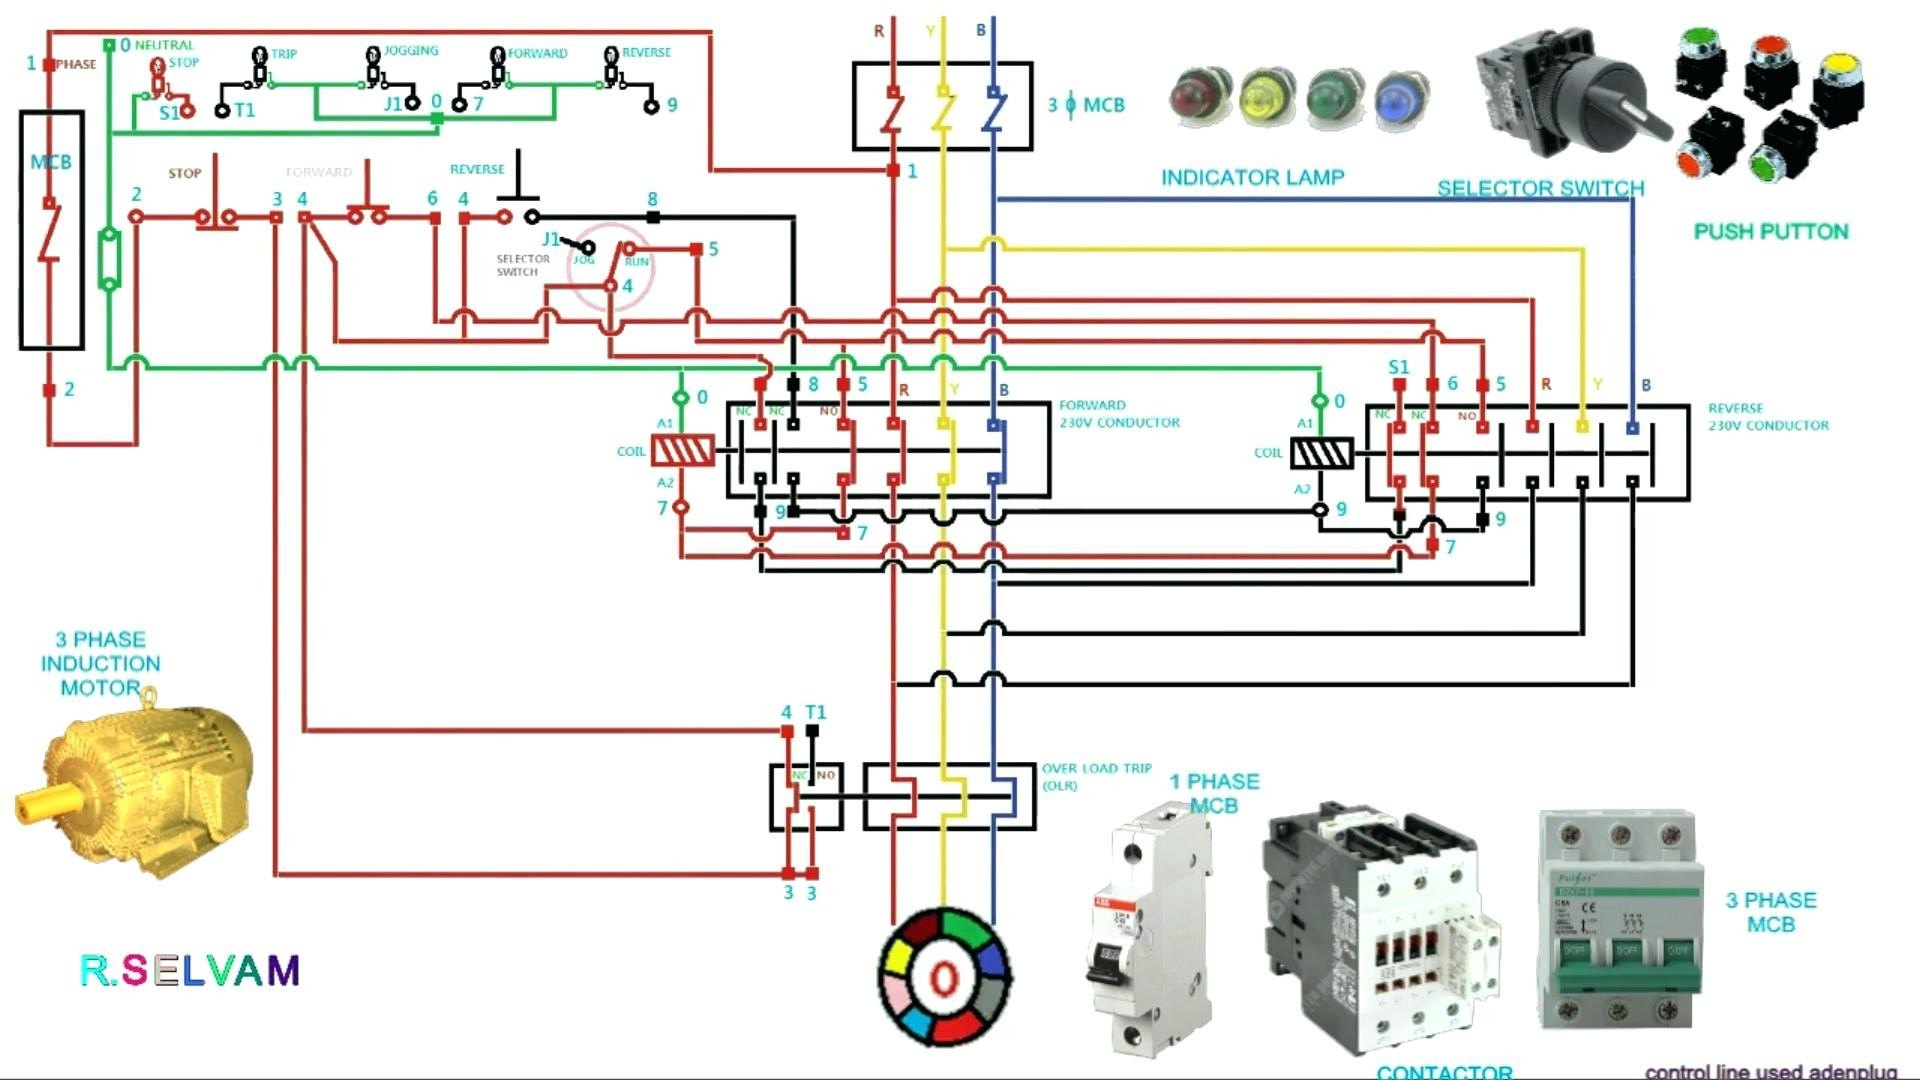 3 phase contactor wiring diagram start stop Collection-3 phase contactor wiring diagram start stop Download Circuit Diagram Contactor Best 3 Phase Motor 8-k